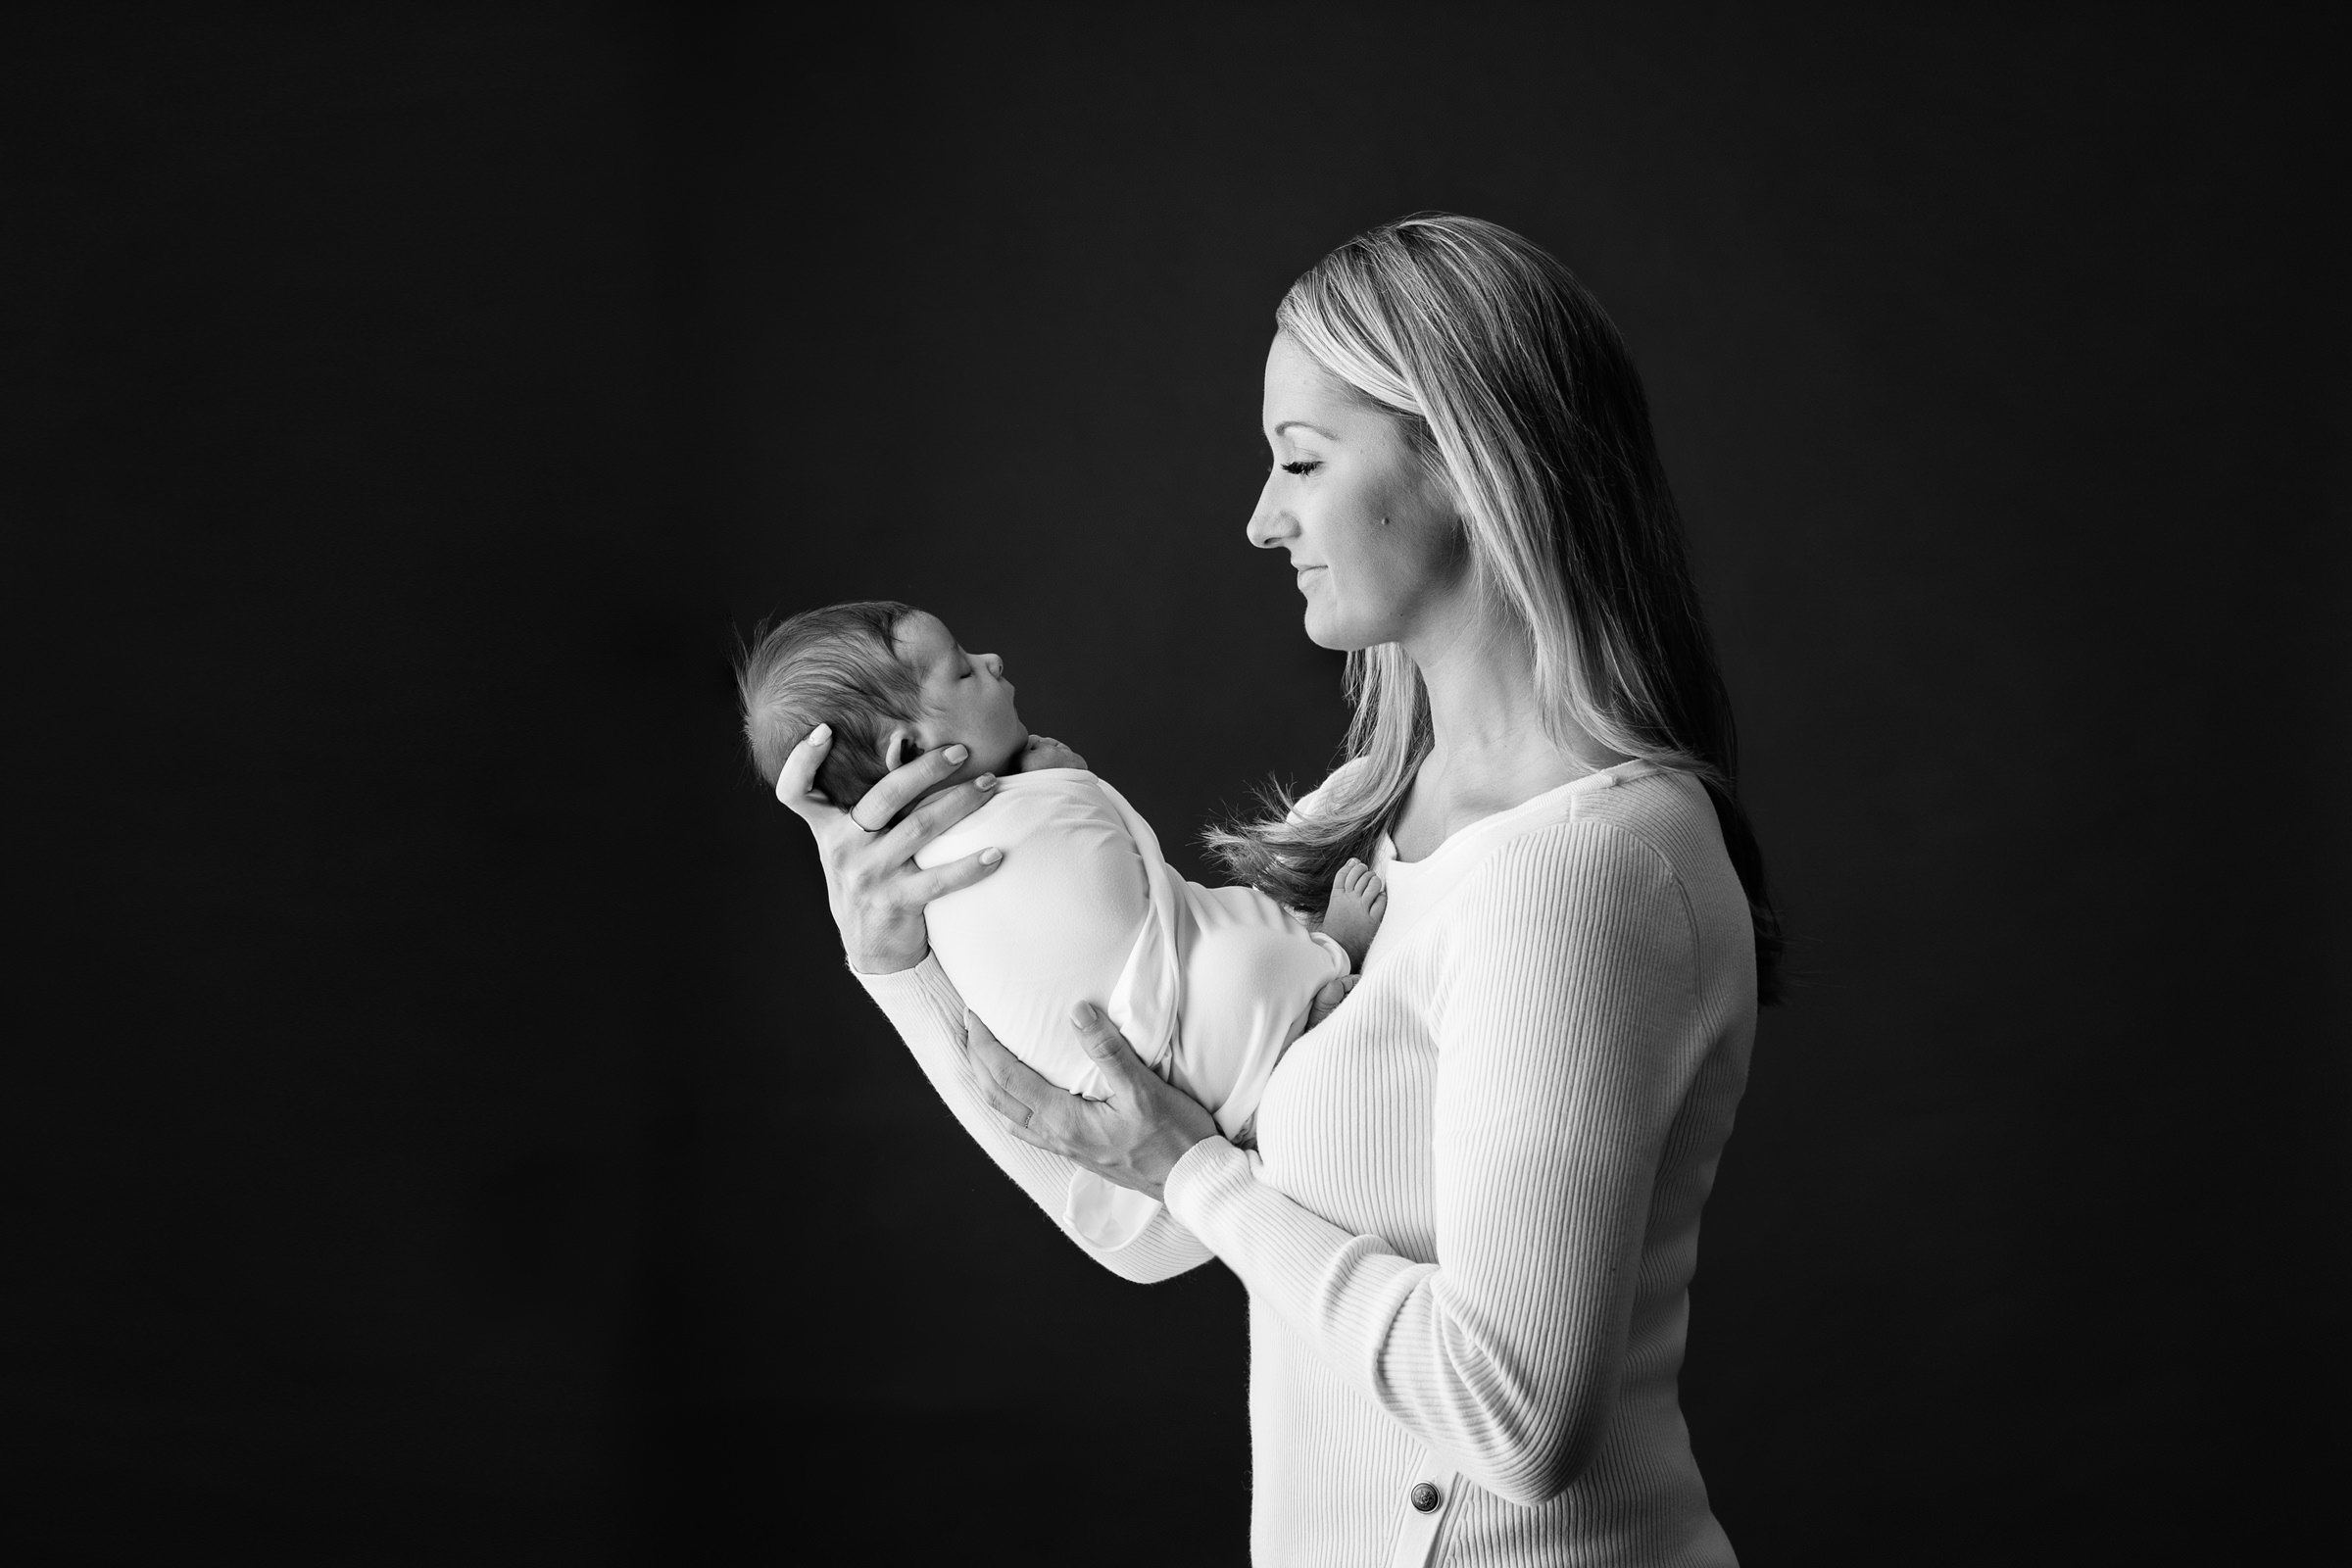 Newborn girl being held by mom wearing white in black and white